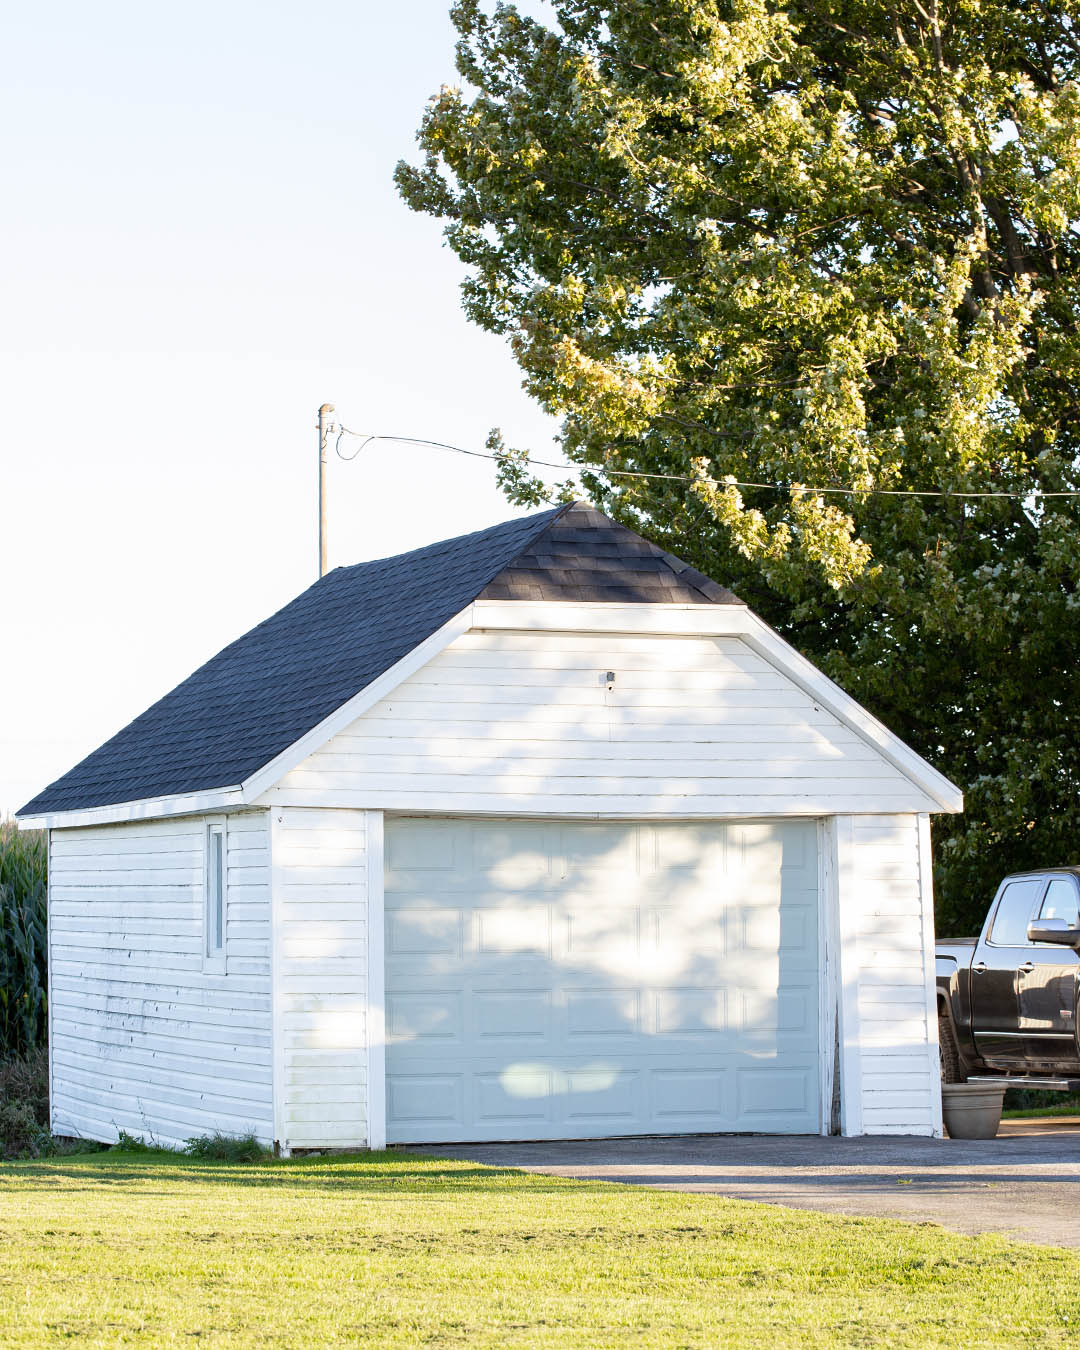 We've started a fun new project! We're fixing up our little old garage to make it look a little more presentable and a little more functional for the cooler months ahead. Here's a look at where we're at with that so far!